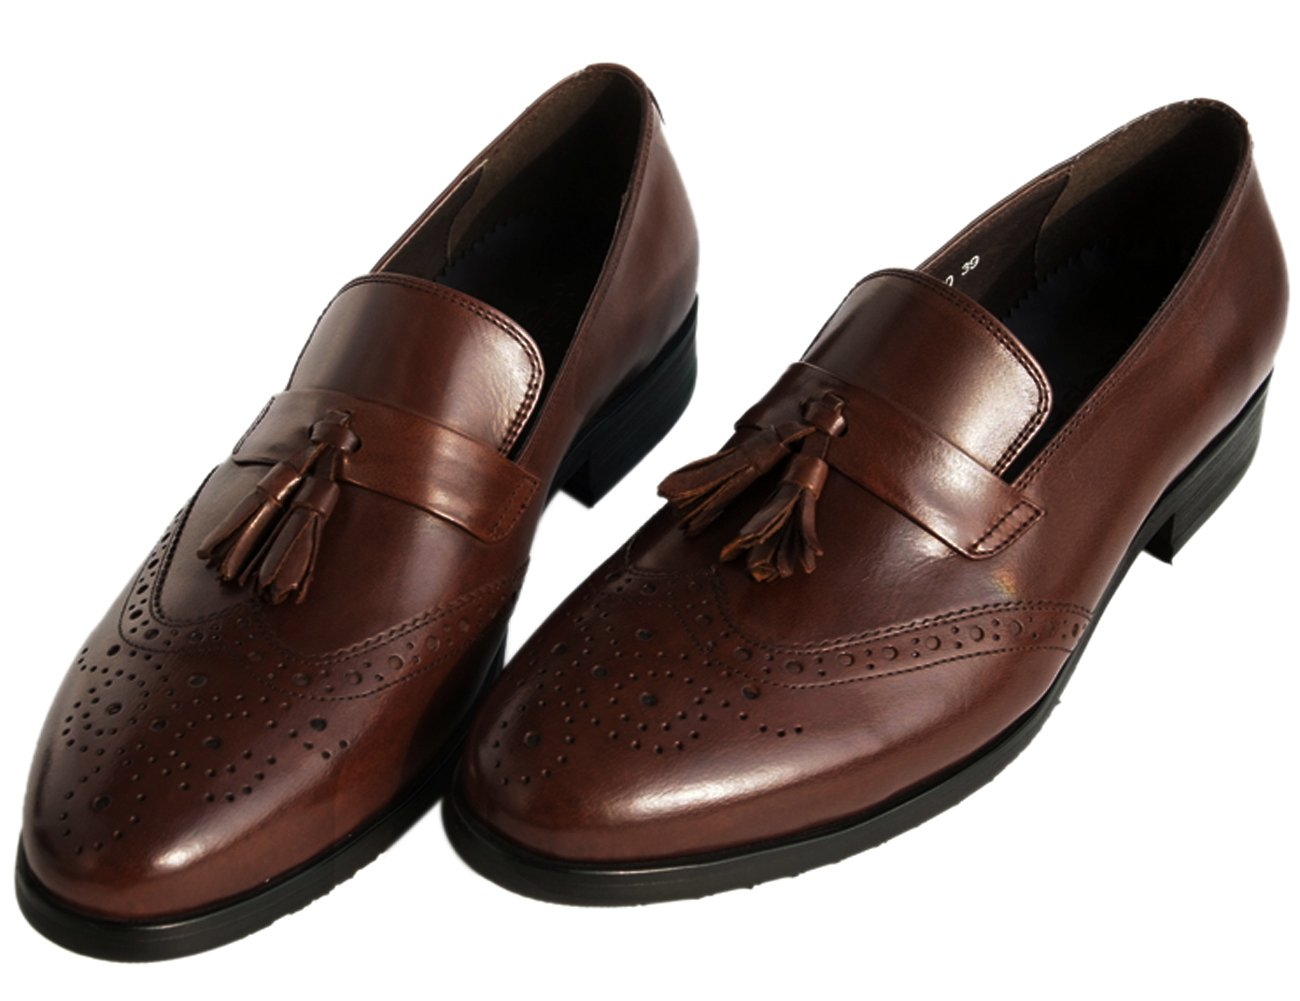 Santimon Brown Shoes Perforated Tassel Slip-On Genuine Leather Venetian-Style Dress Shoes by 8.5 D(M) US